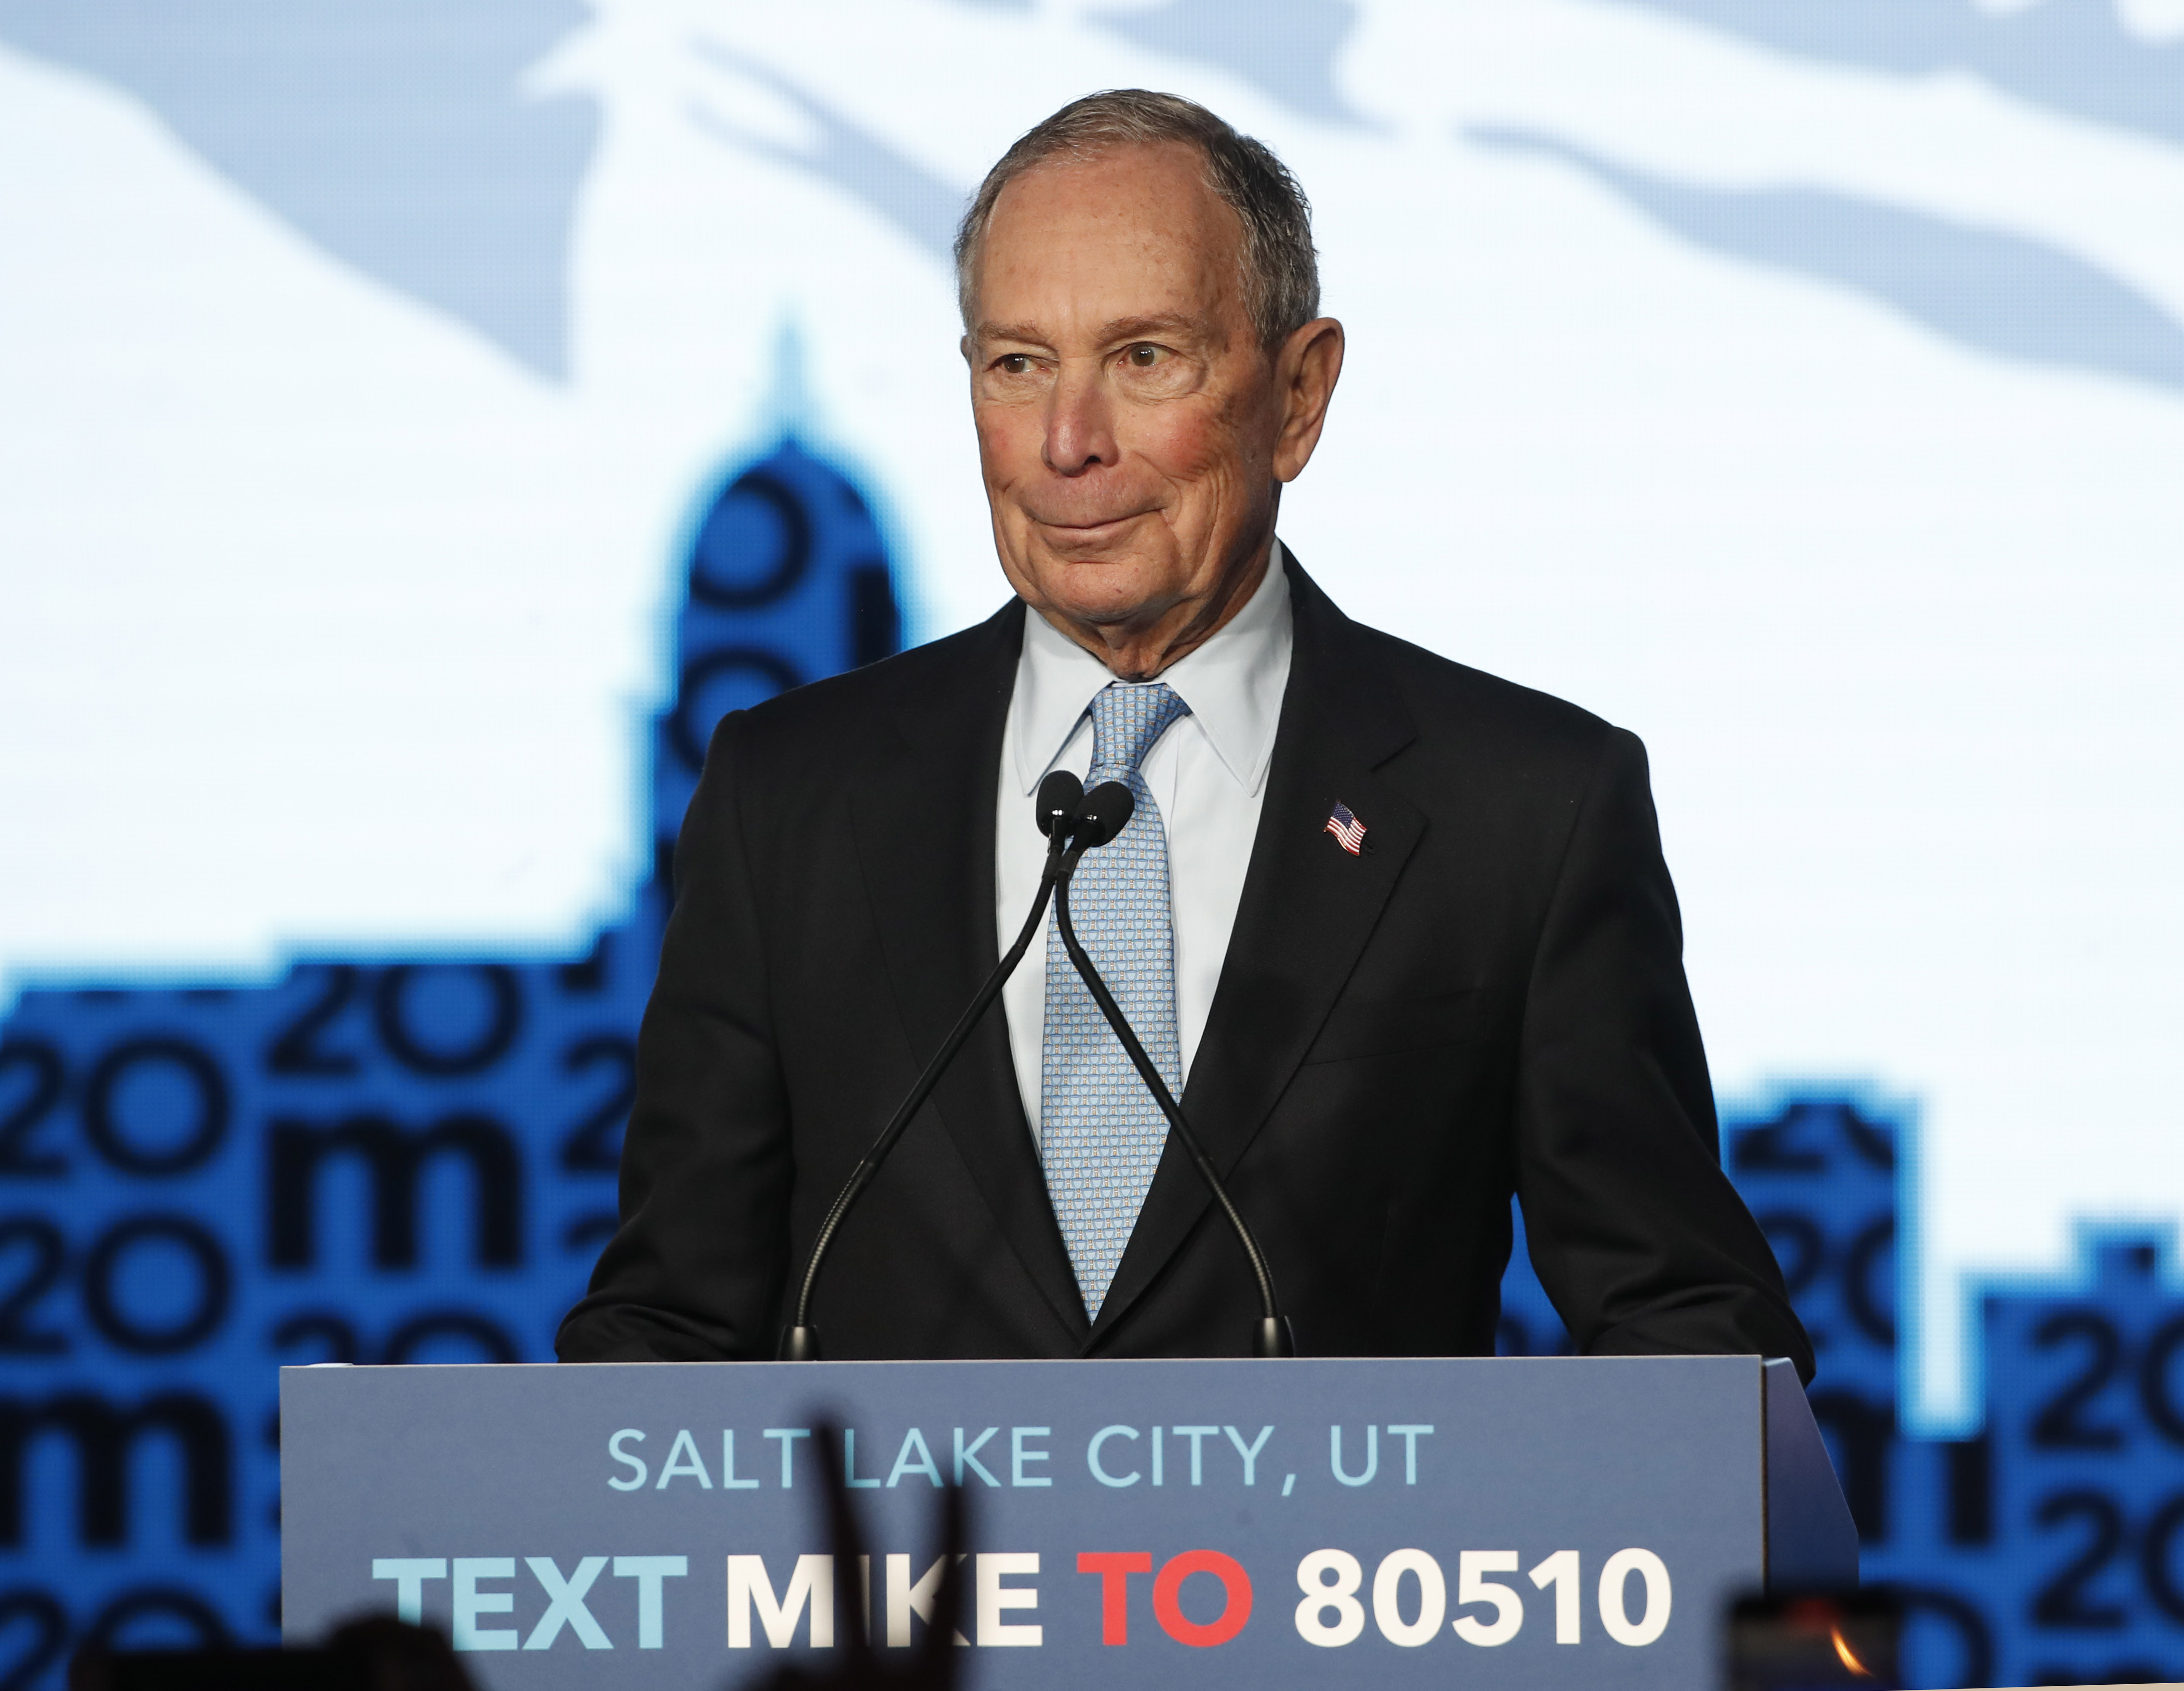 Mike Bloomberg speaking at a campaign rally in Salt Lake City.